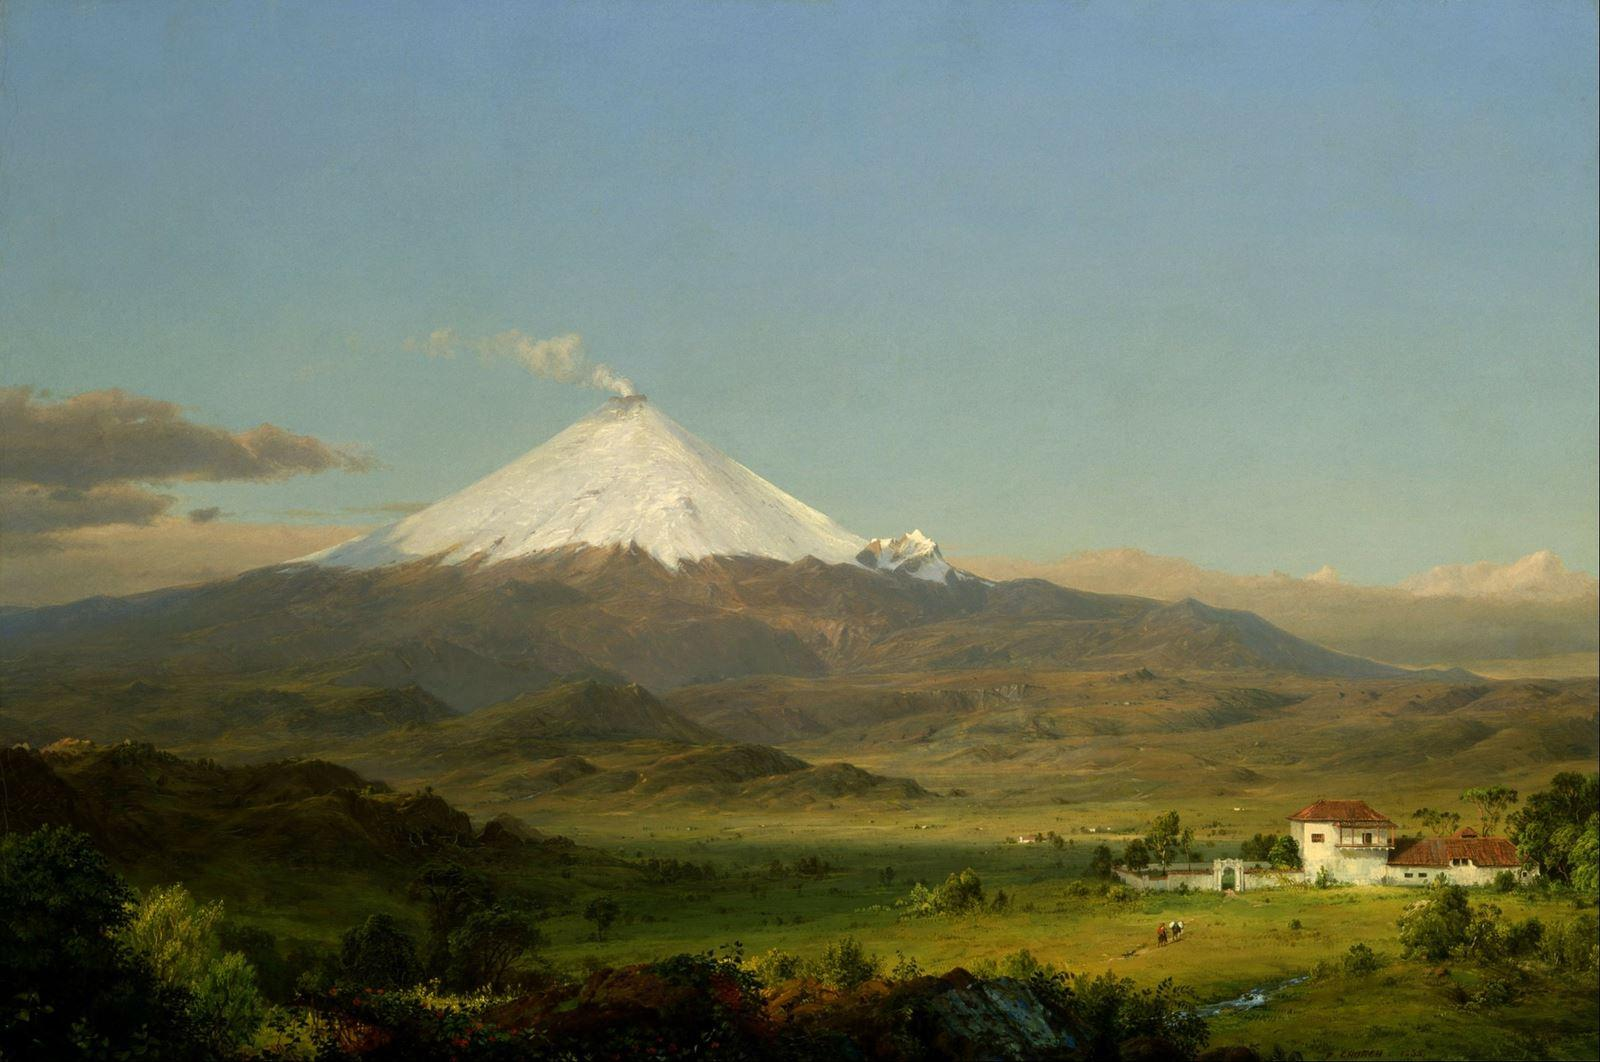 Courrier mexique gratuitfrederic church 84947 1920